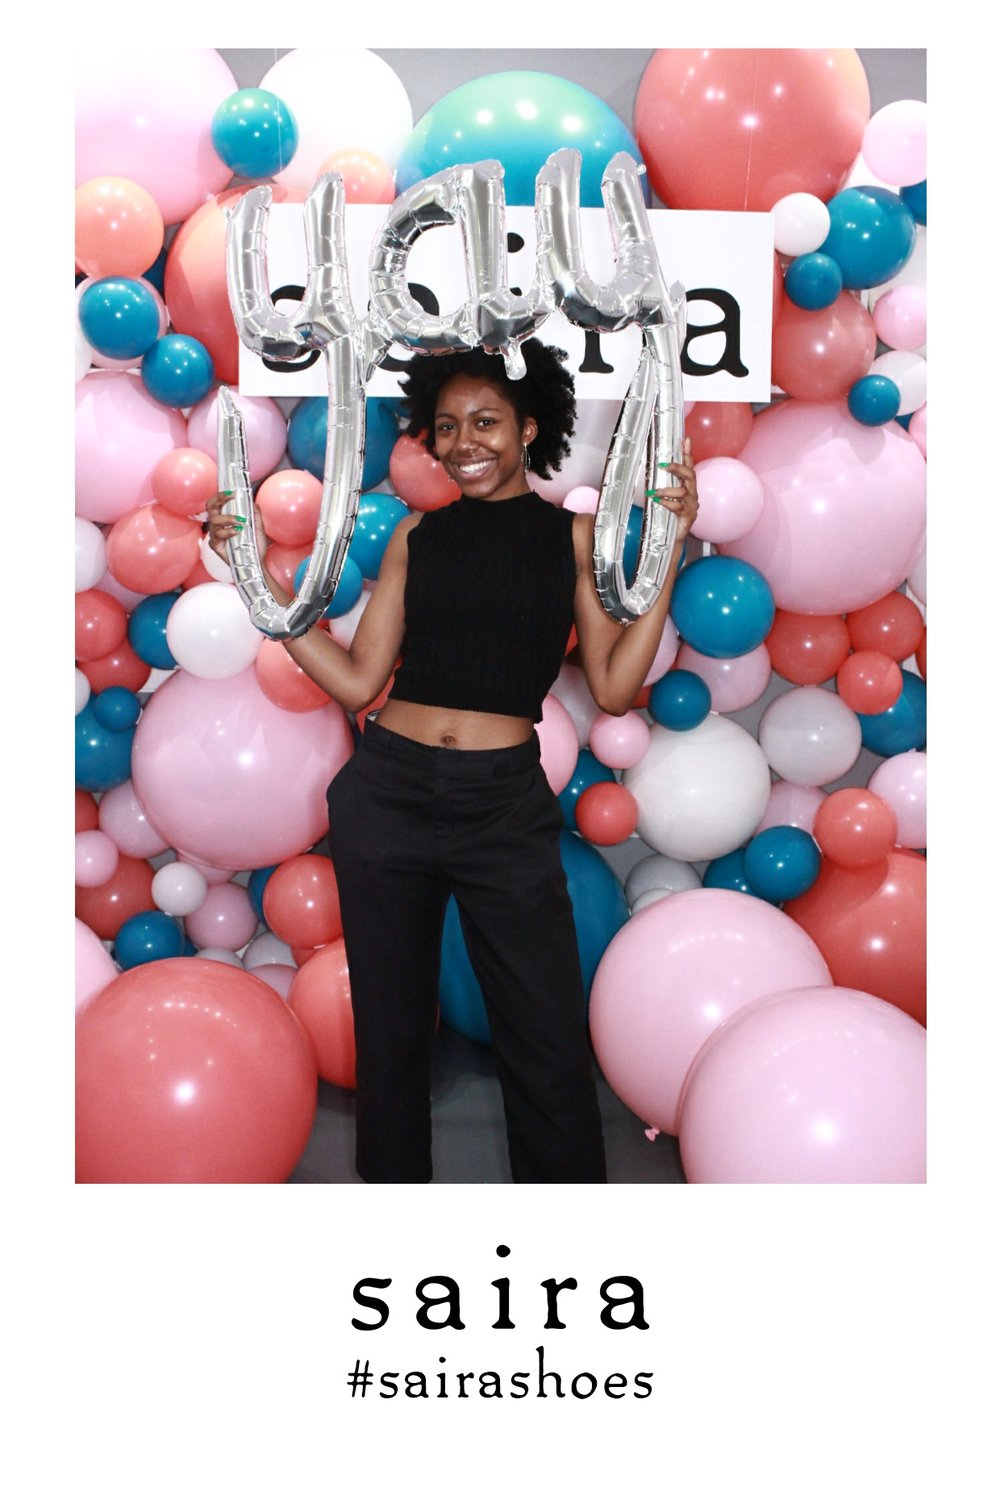 The London Lightbox Balloon Photo Booth